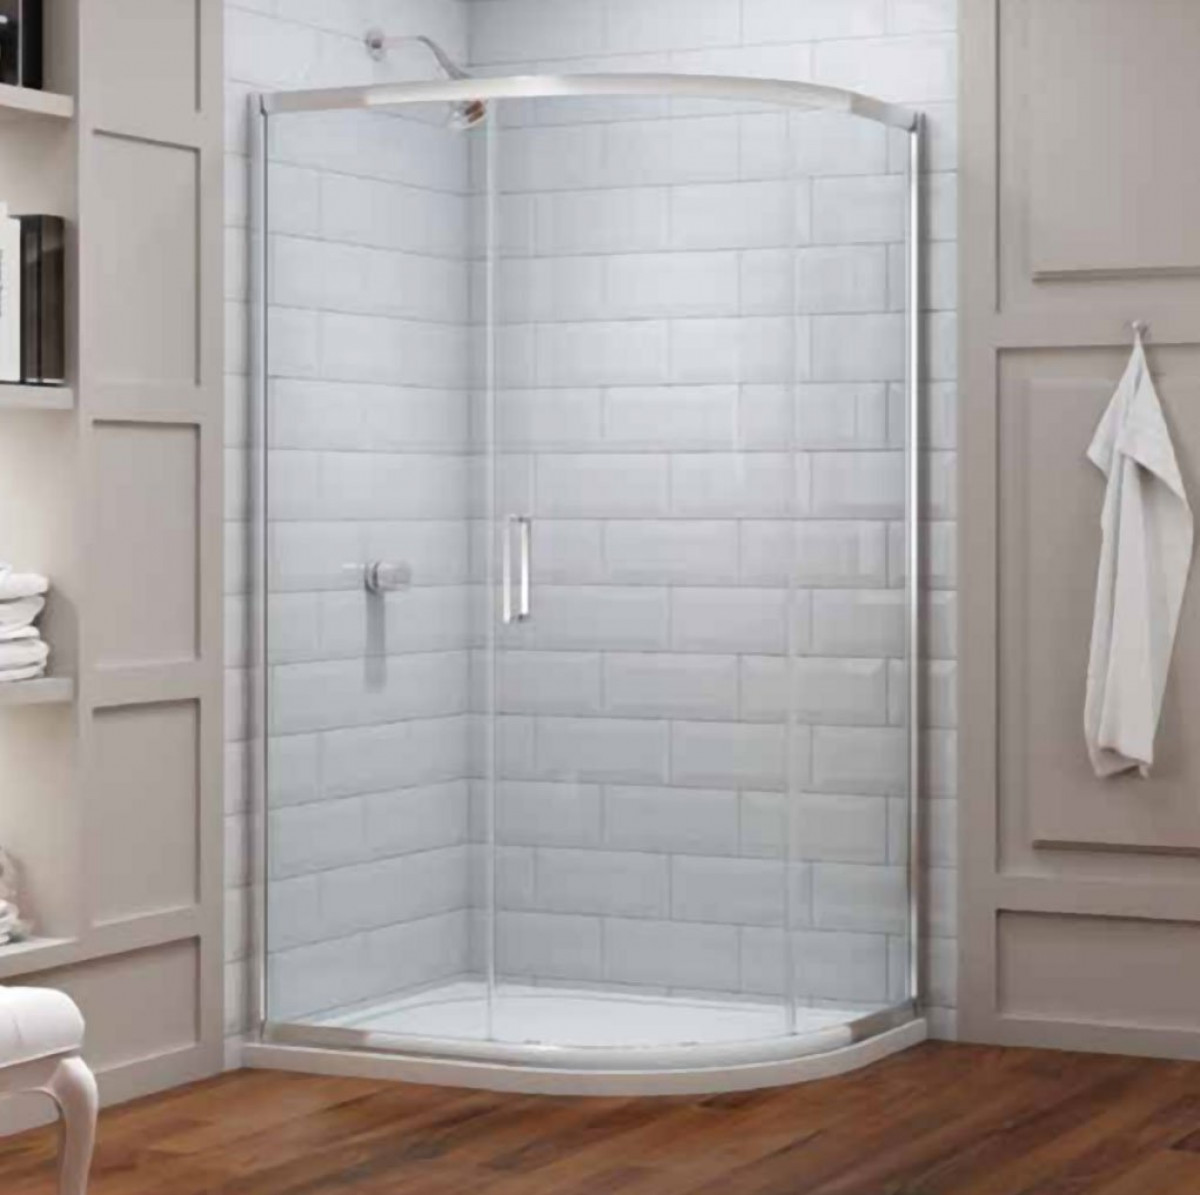 Merlyn 8 Series 1000 X 800 1 Door Quadrant Shower